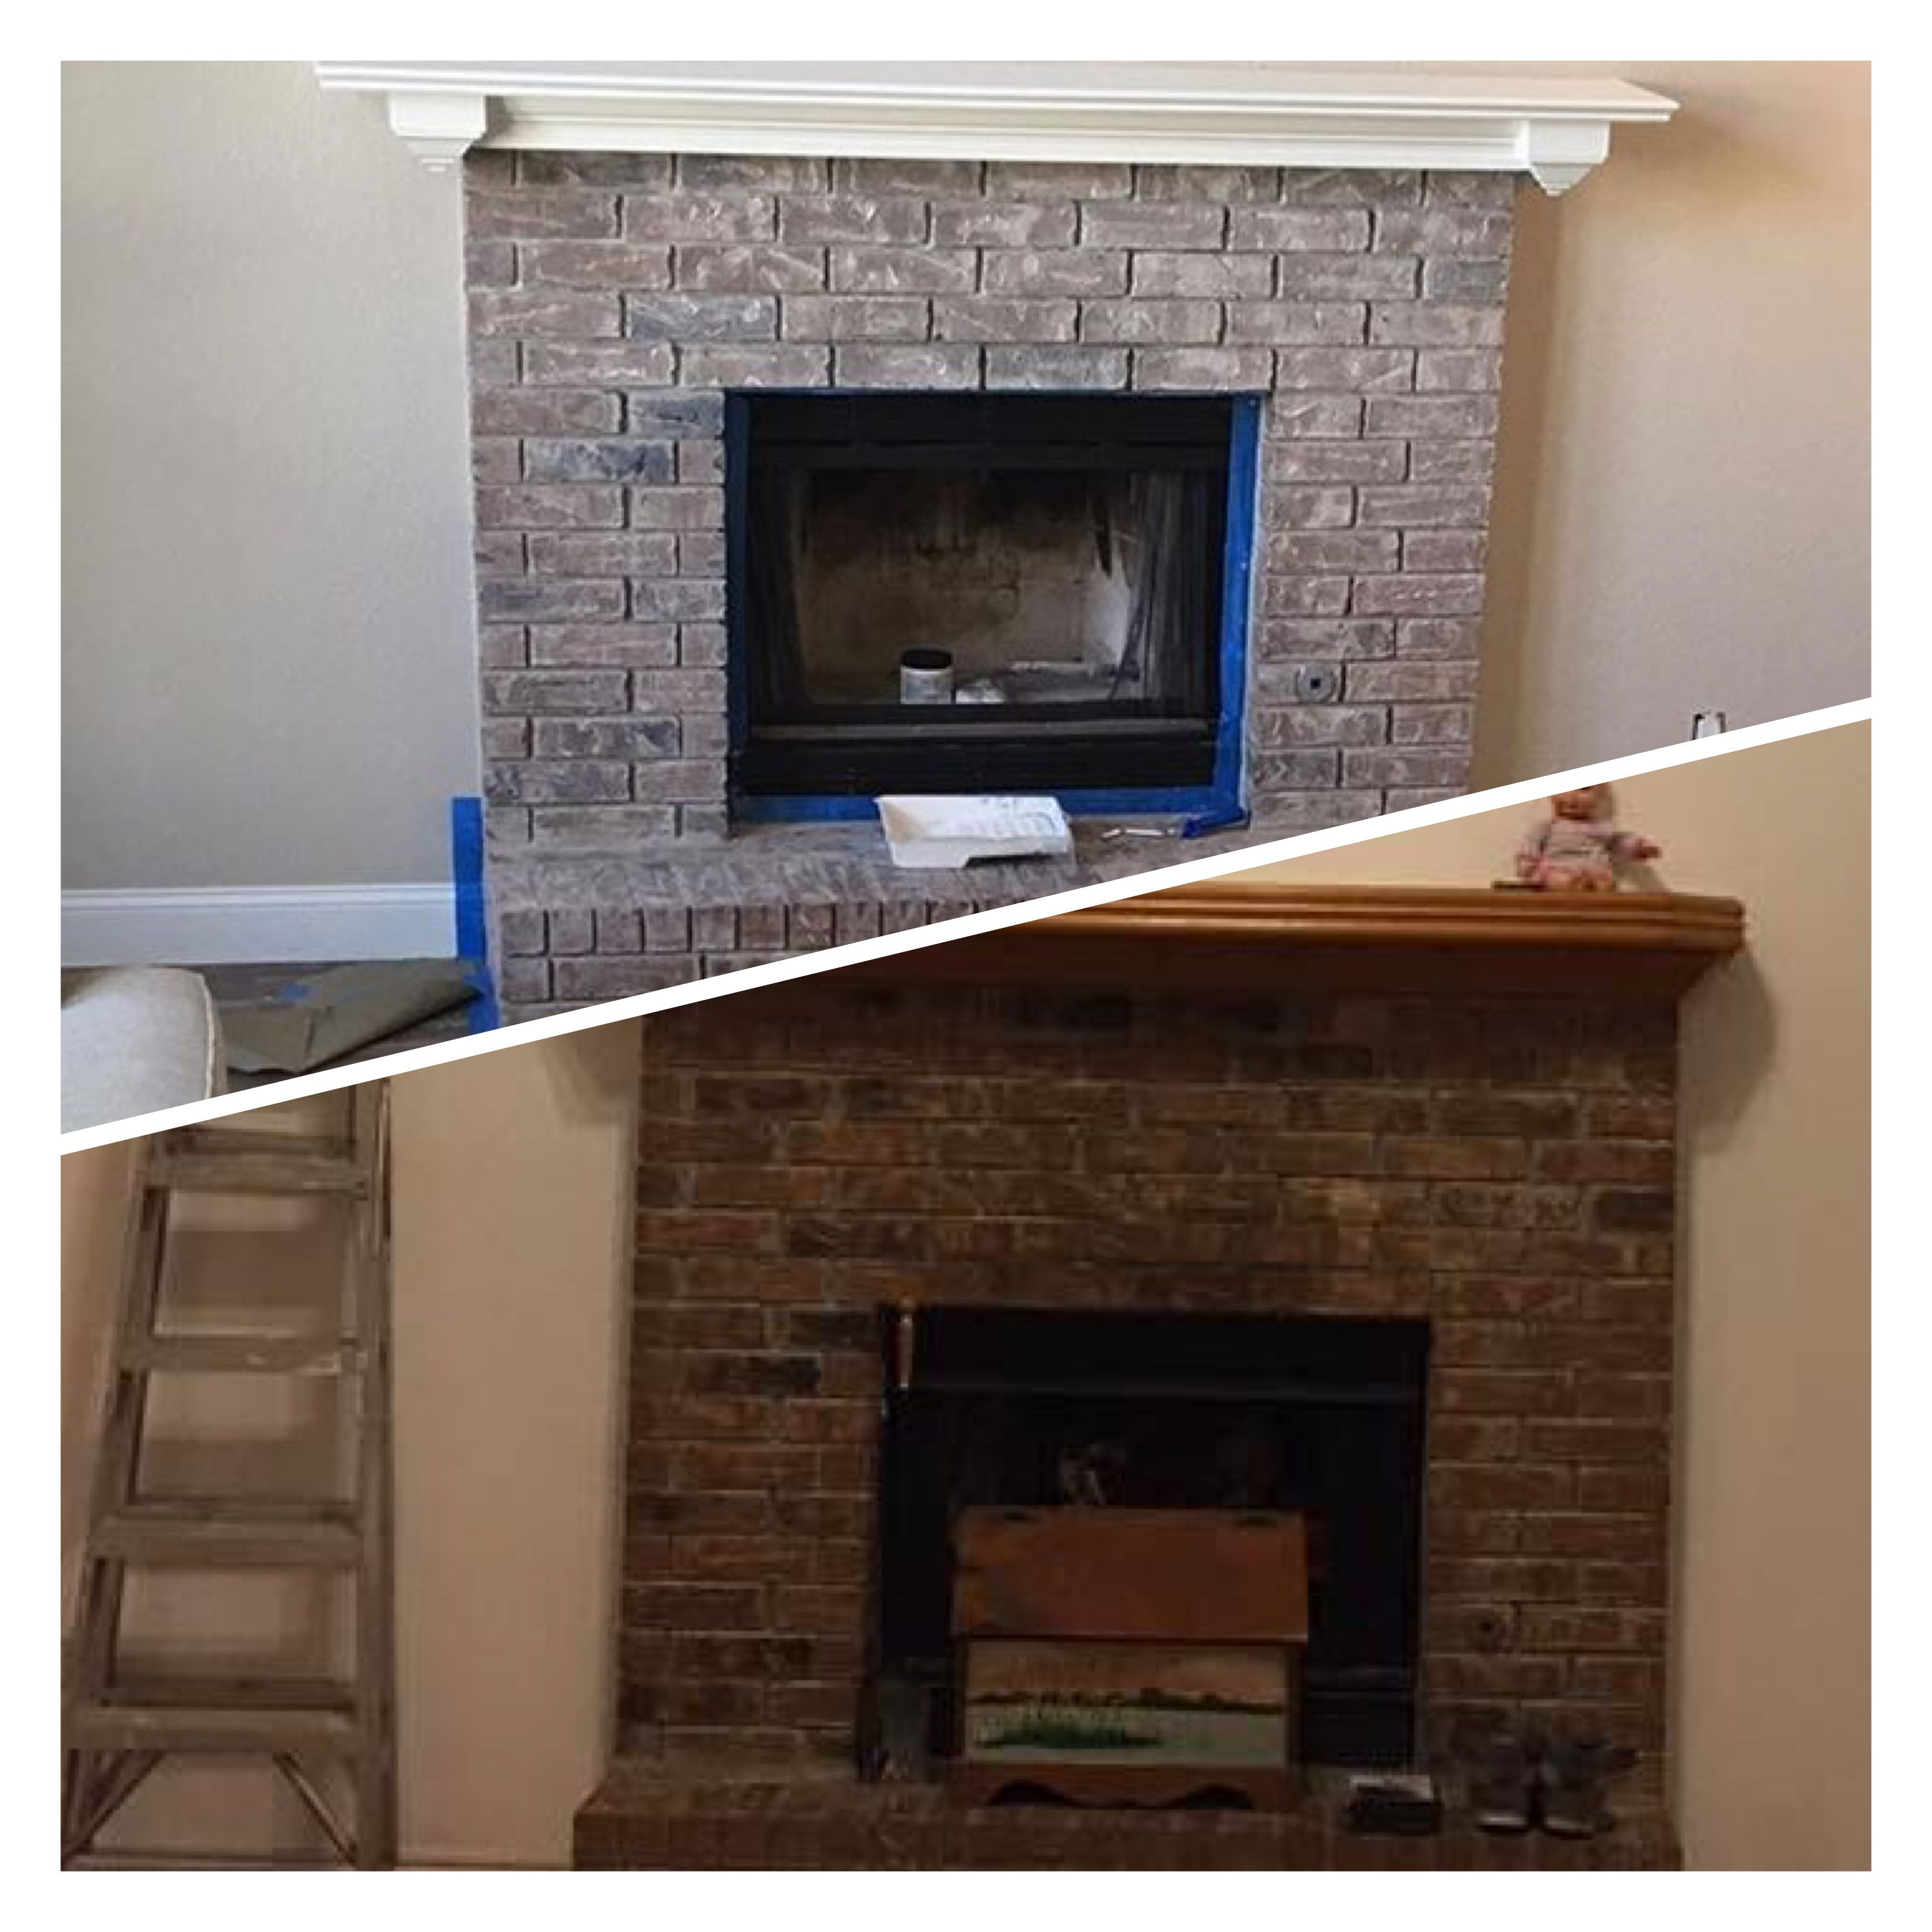 Brick Fireplace Before And After Using Valspar Limewash Glaze White Wash Brick Fireplace Fireplace Seating